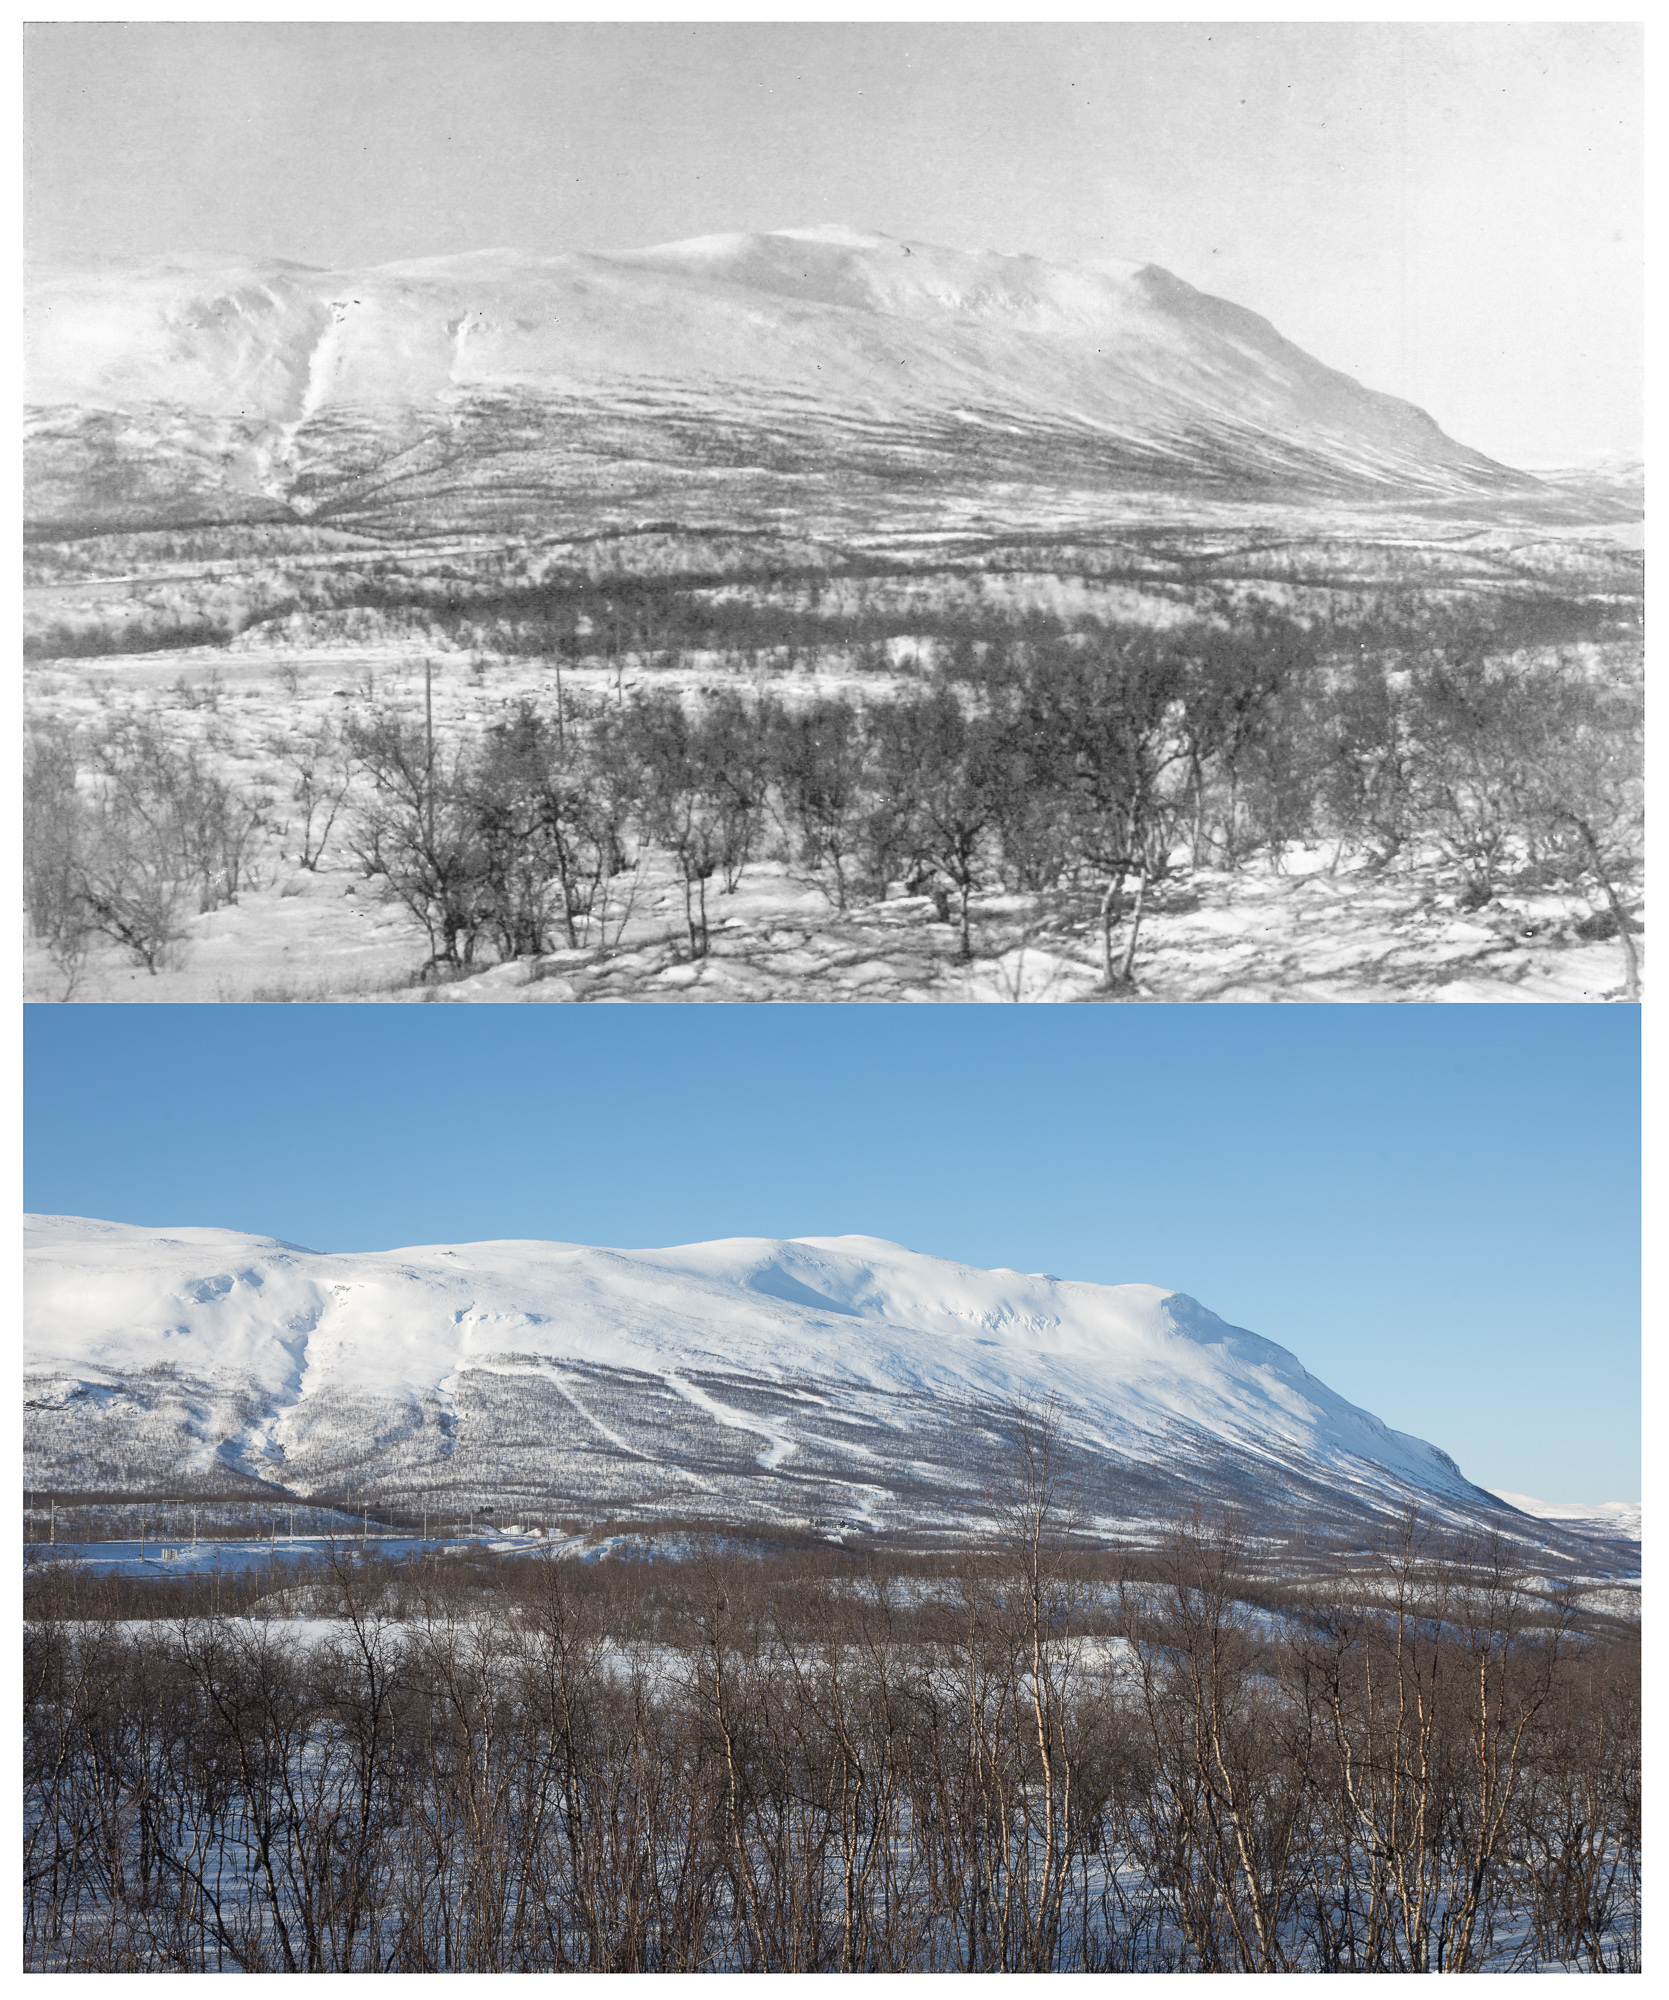 Nuolja 1925 and 2017, Photo by C.G. Alm and Oliver Wright